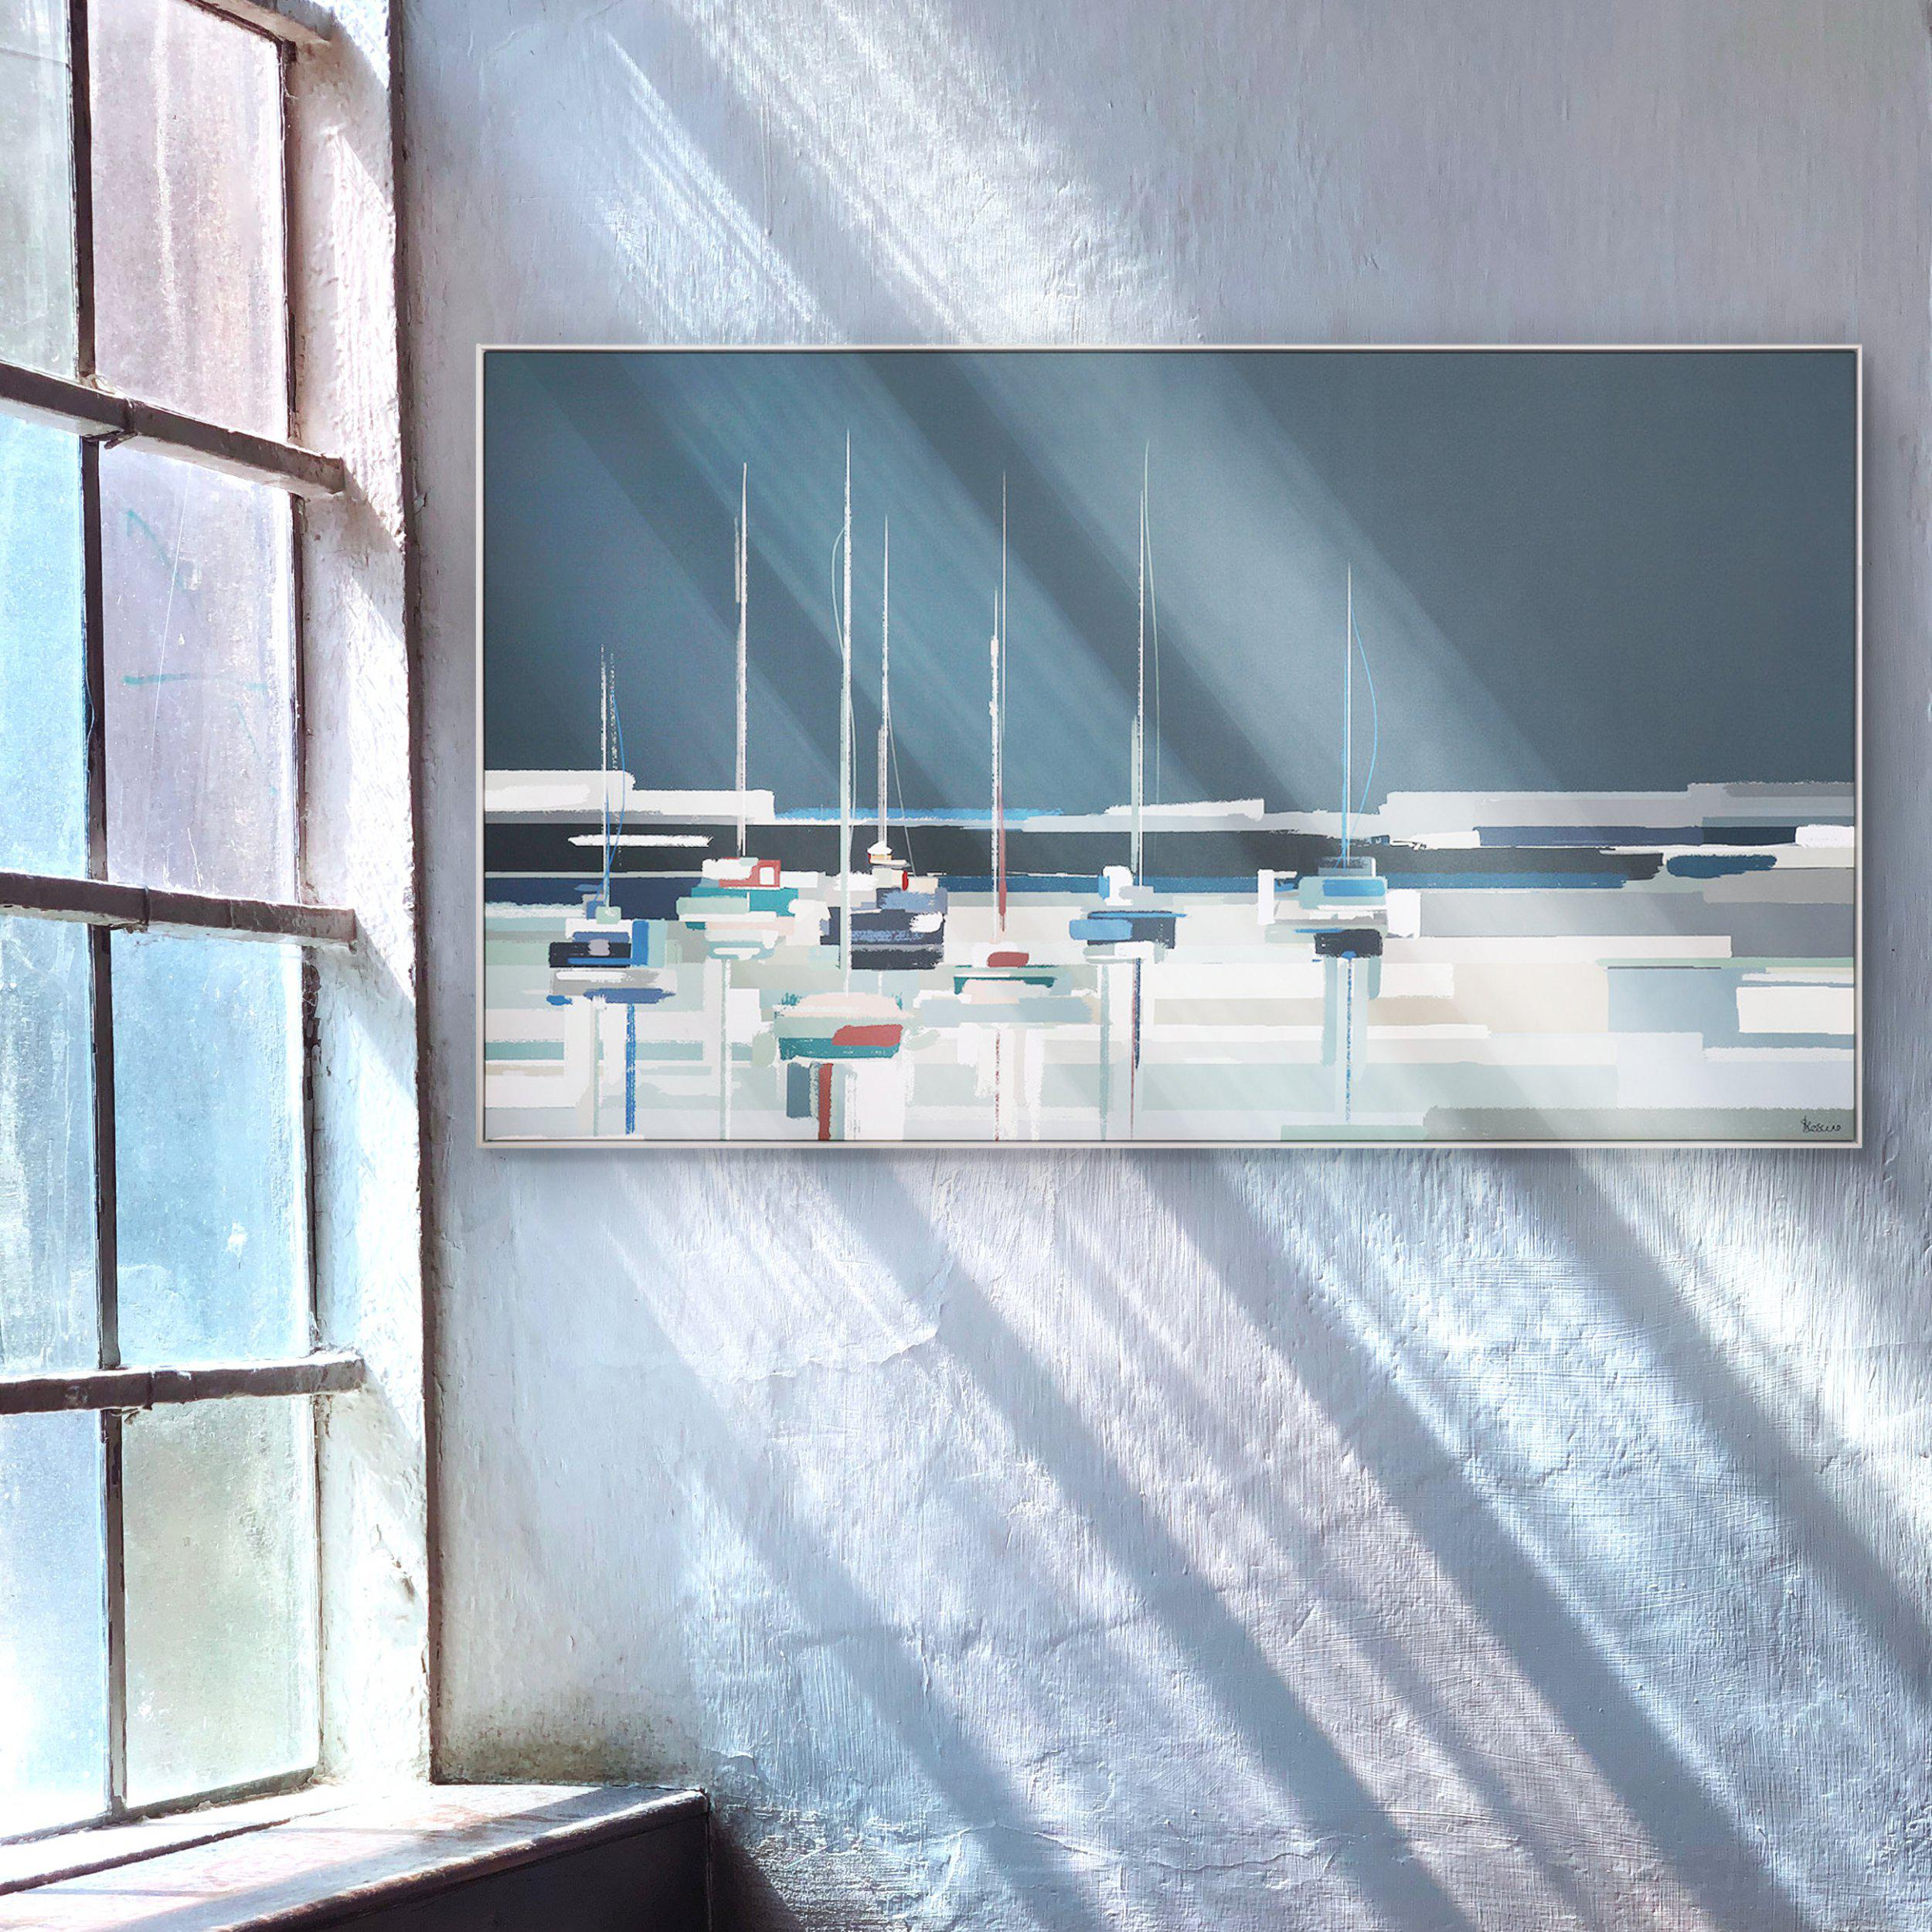 Art Gallery - Moored Boats Painting by Artist Sabrina Roscino - Framed Print For Sale - Room Display